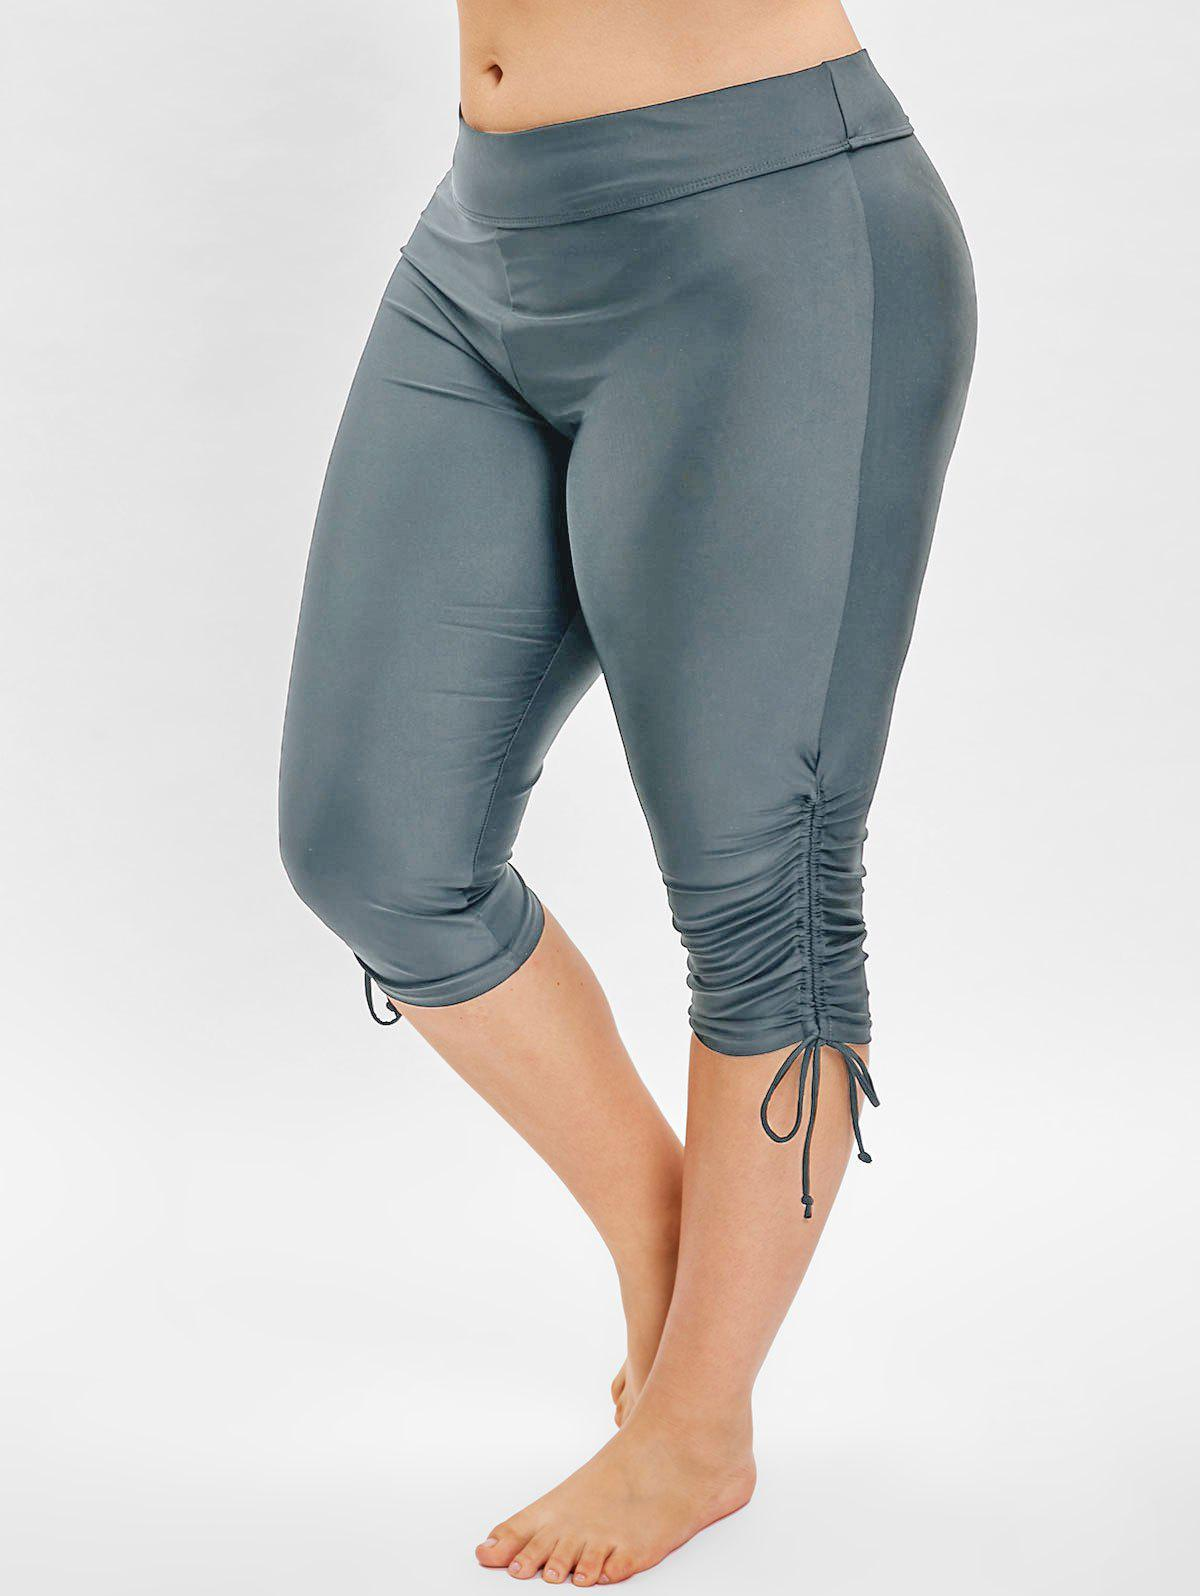 Plus Size Side Drawstring Knee Length Swim Pants - LIGHT SLATE GRAY 5X